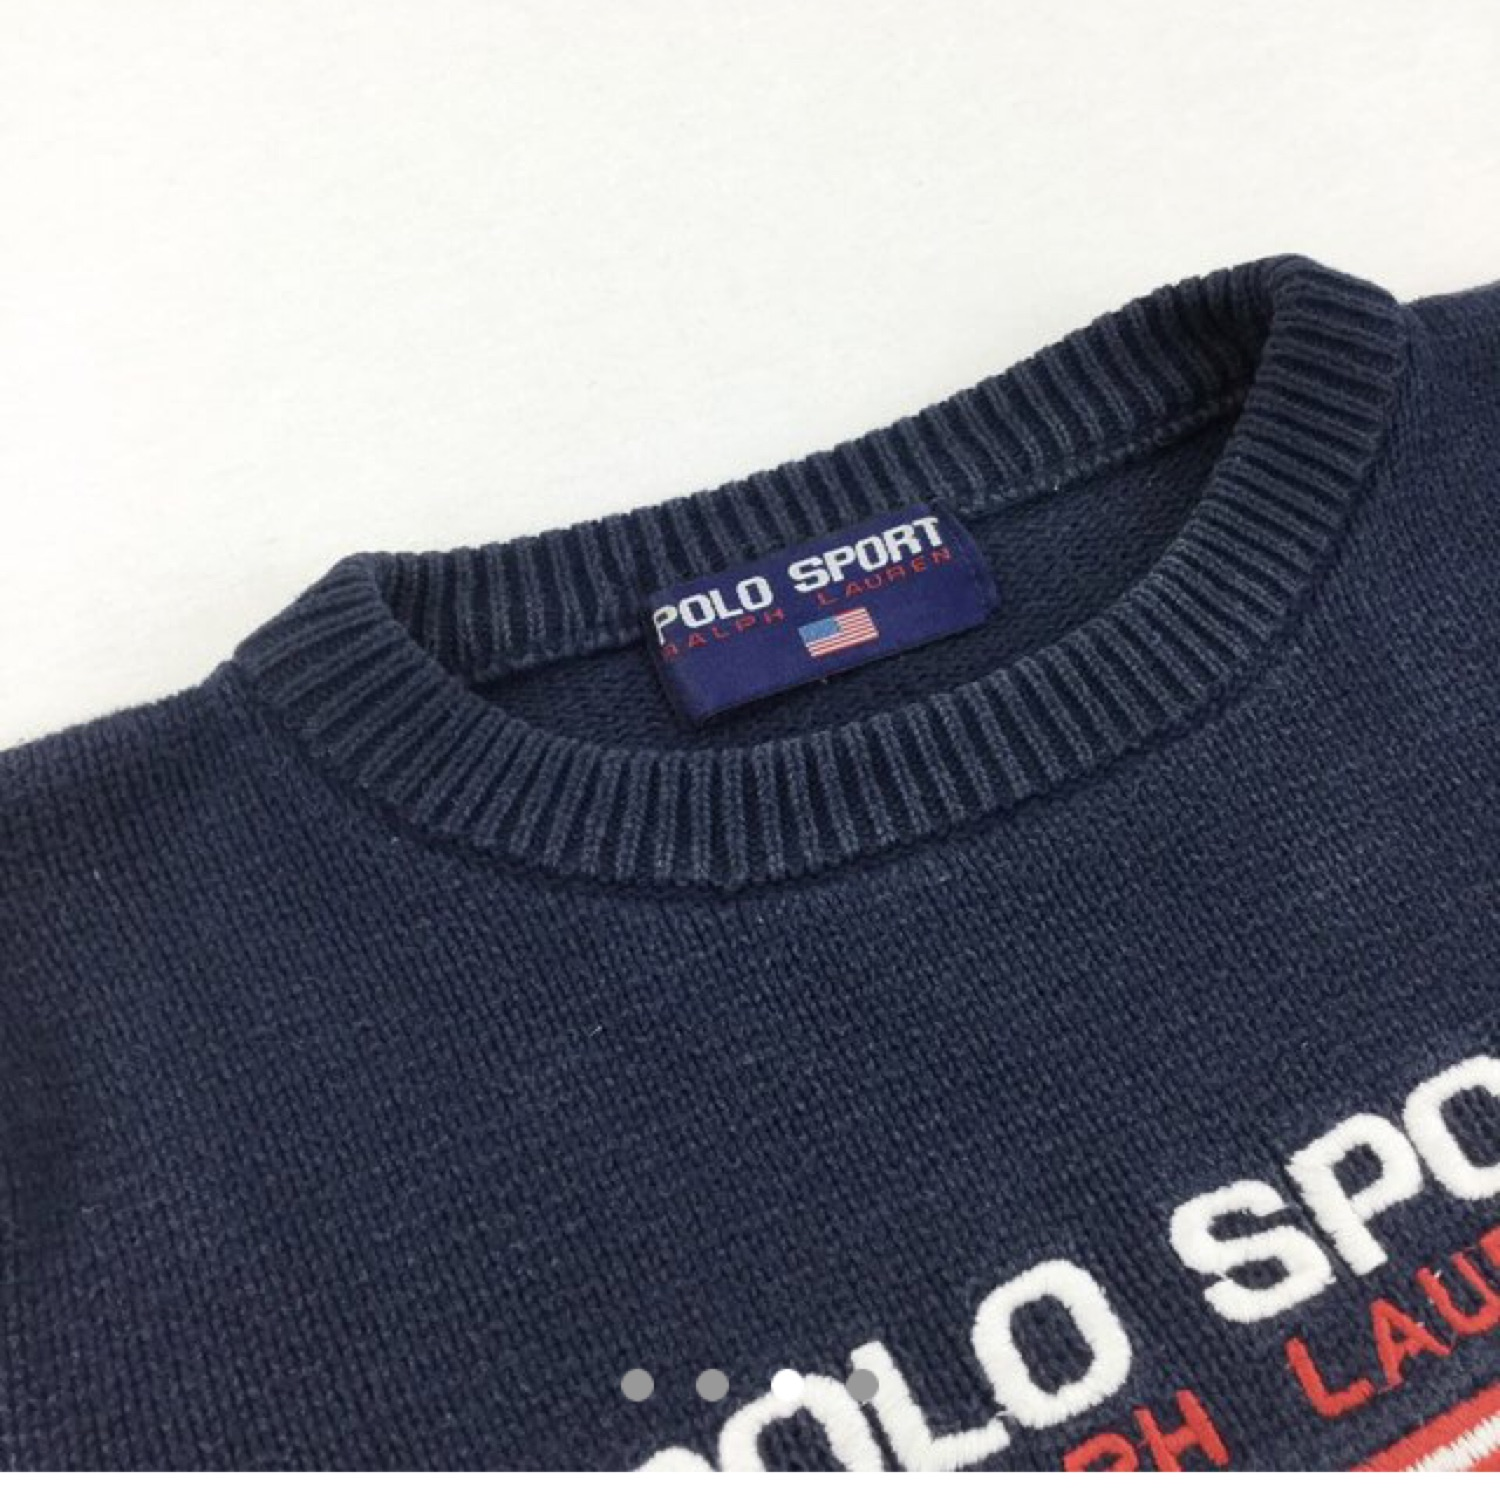 Ralph Lauren Polo Sport Knitted Sweatshirt